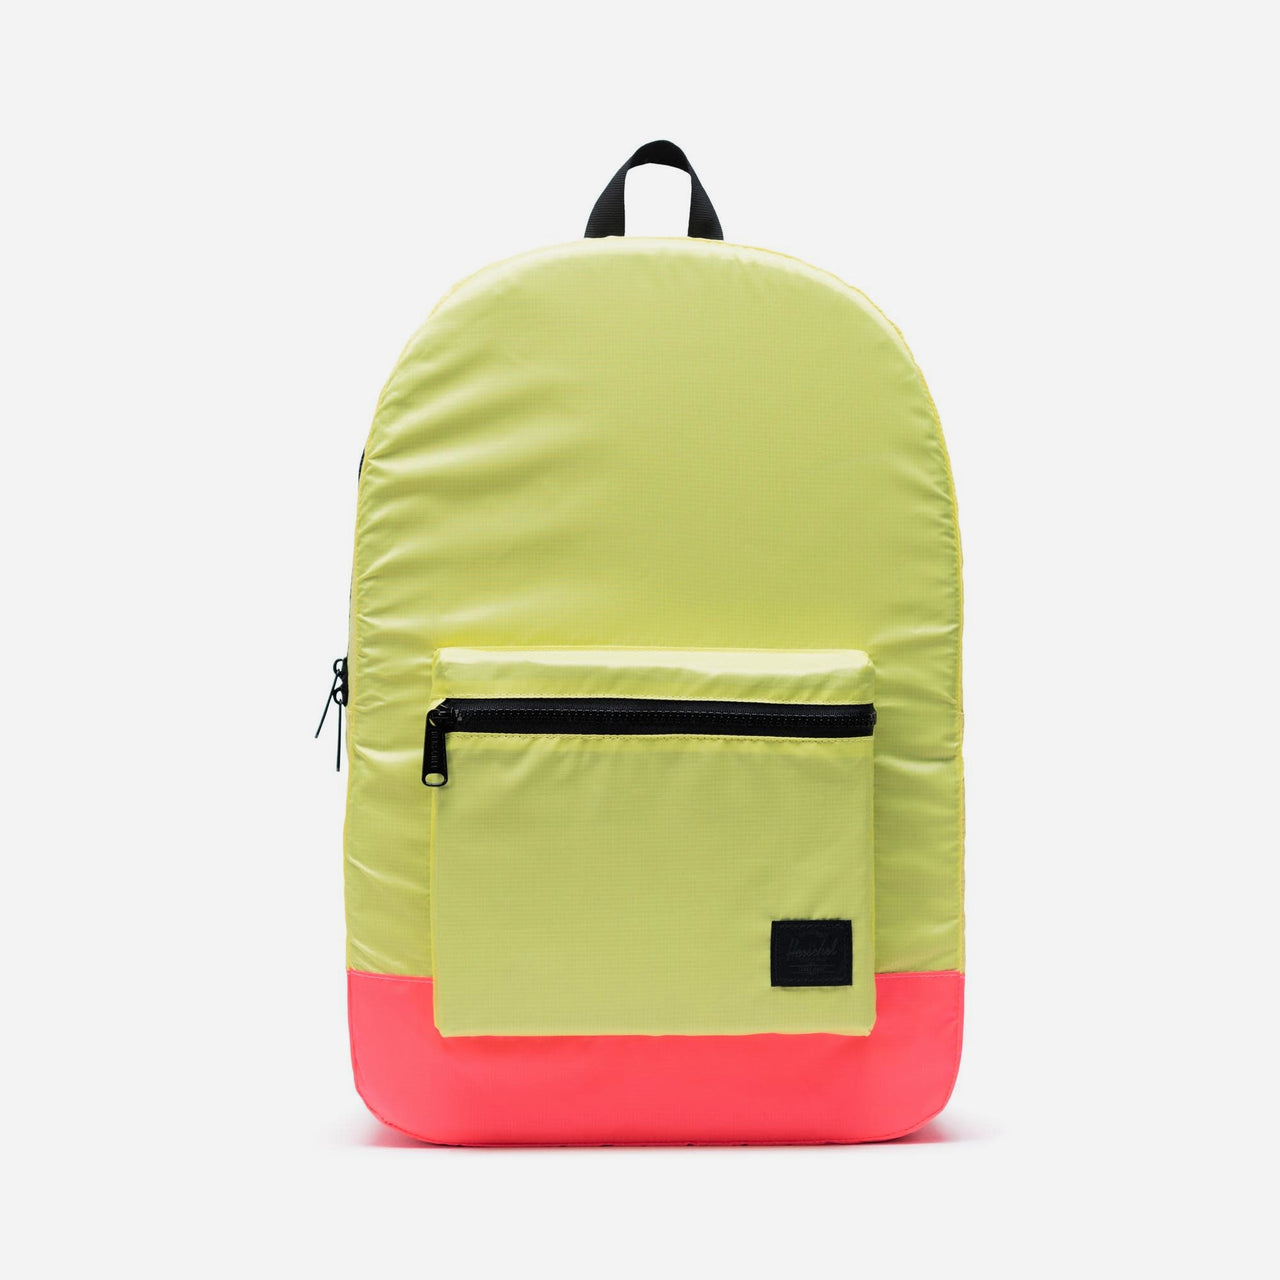 Packable Daypack - Hightlight/Neon Pink